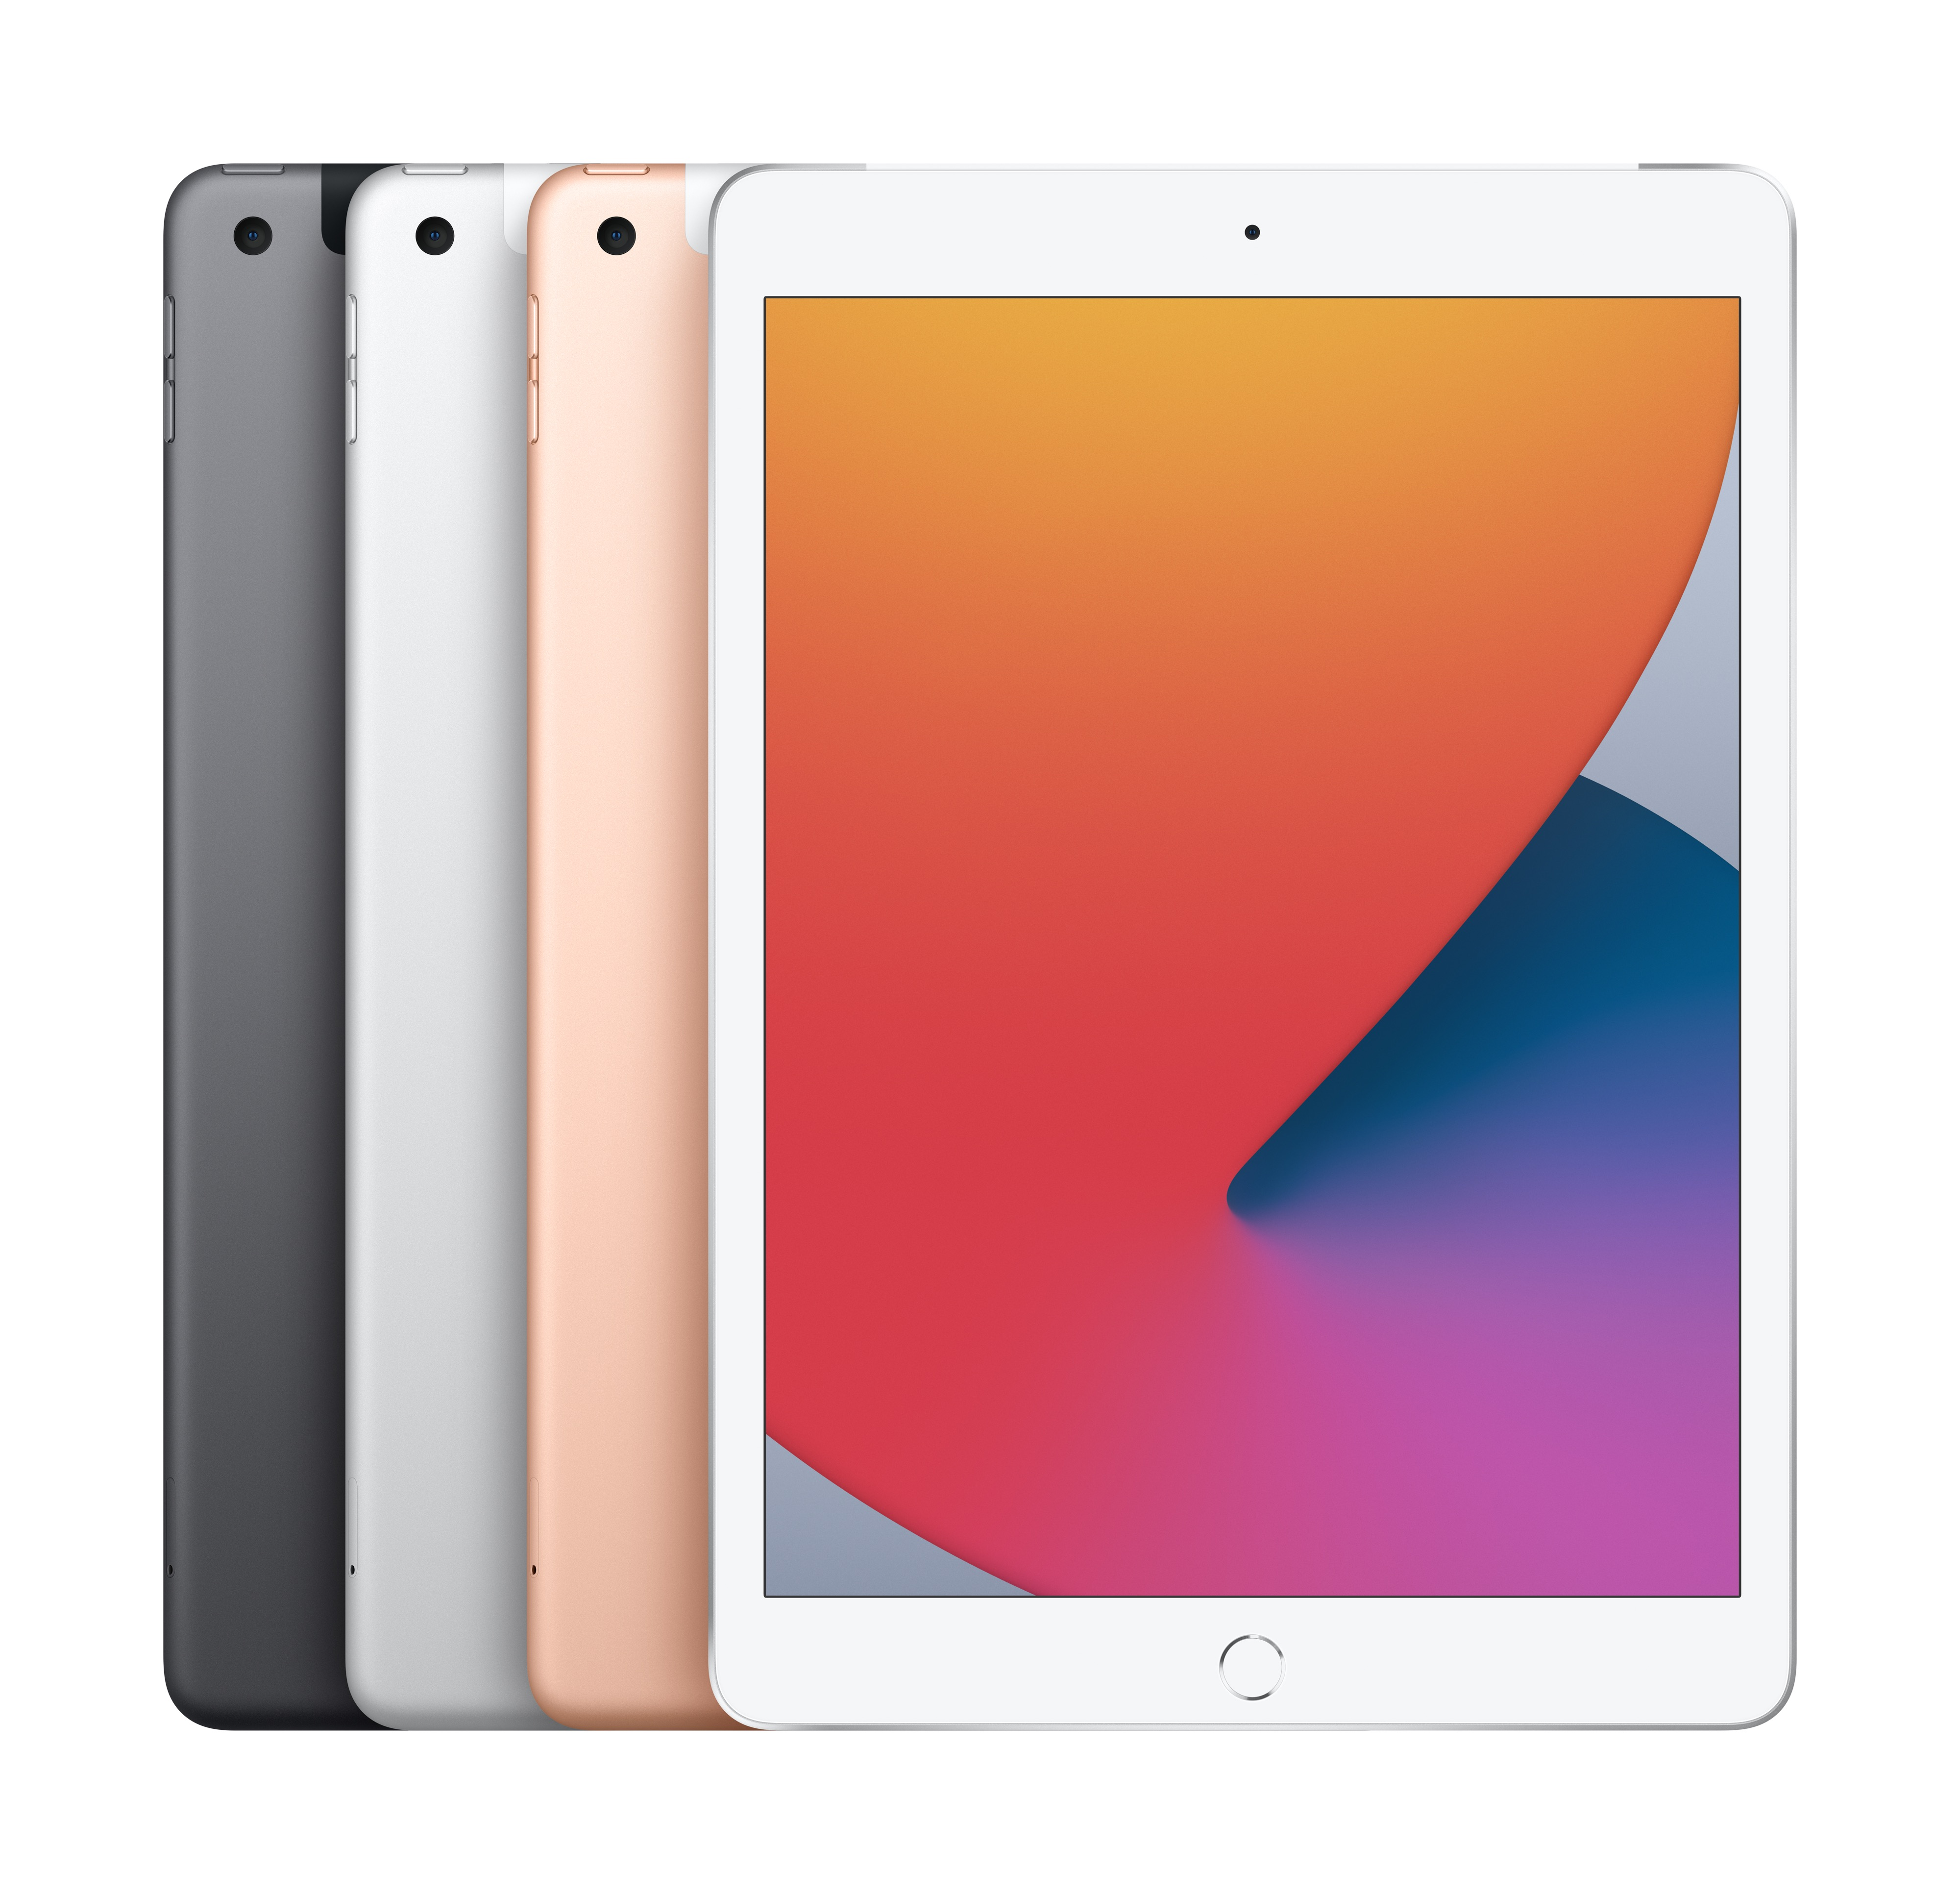 iPad 10.2 Inch at Small Dog Electronics